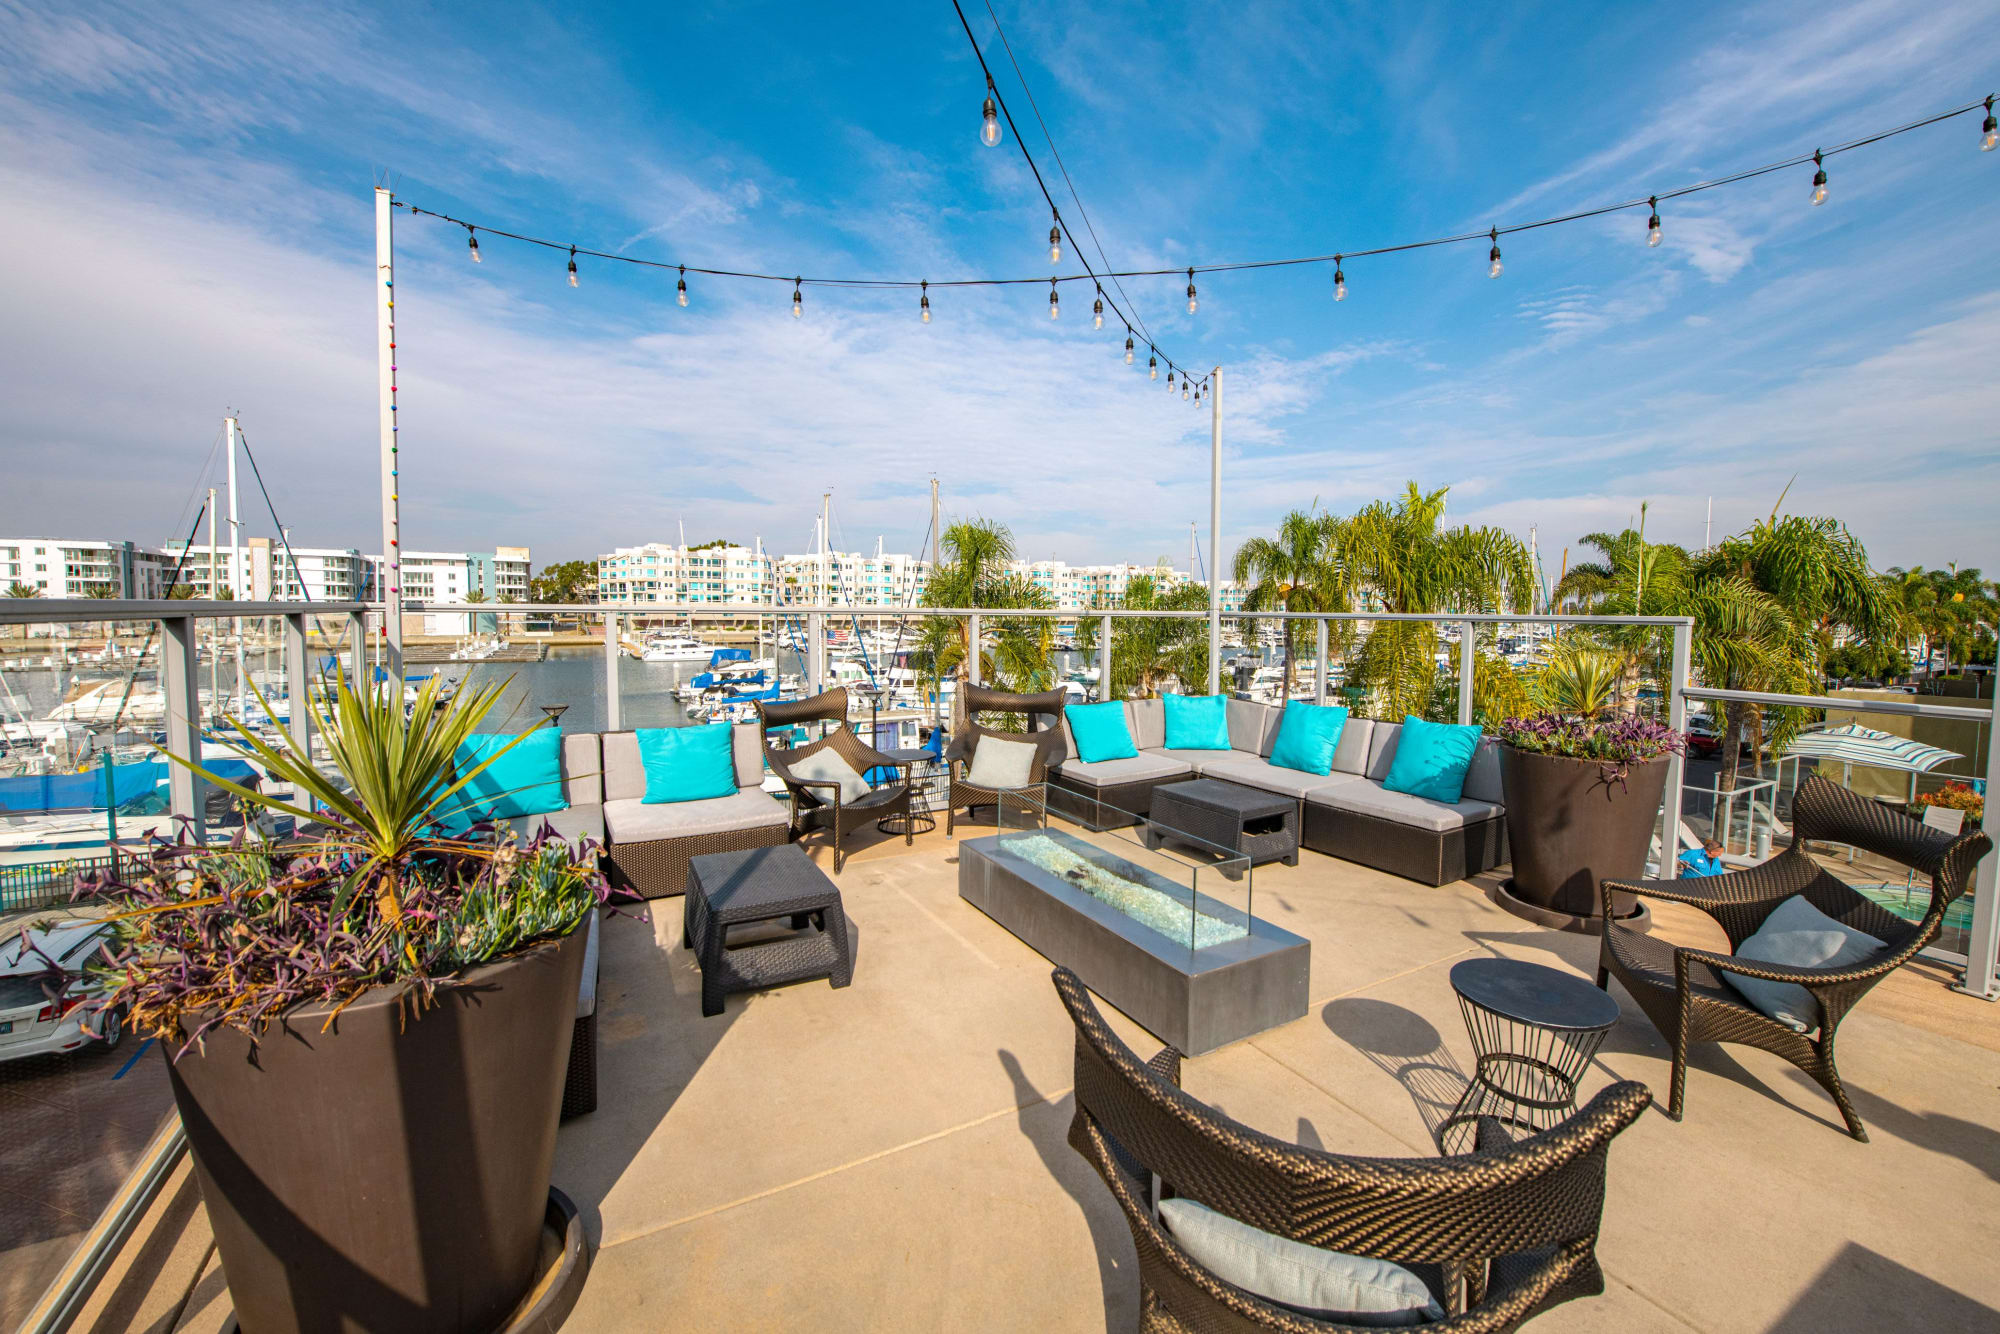 Spacious outside community area with comfortable seating and a fire pit at Harborside Marina Bay Apartments in Marina del Rey, California